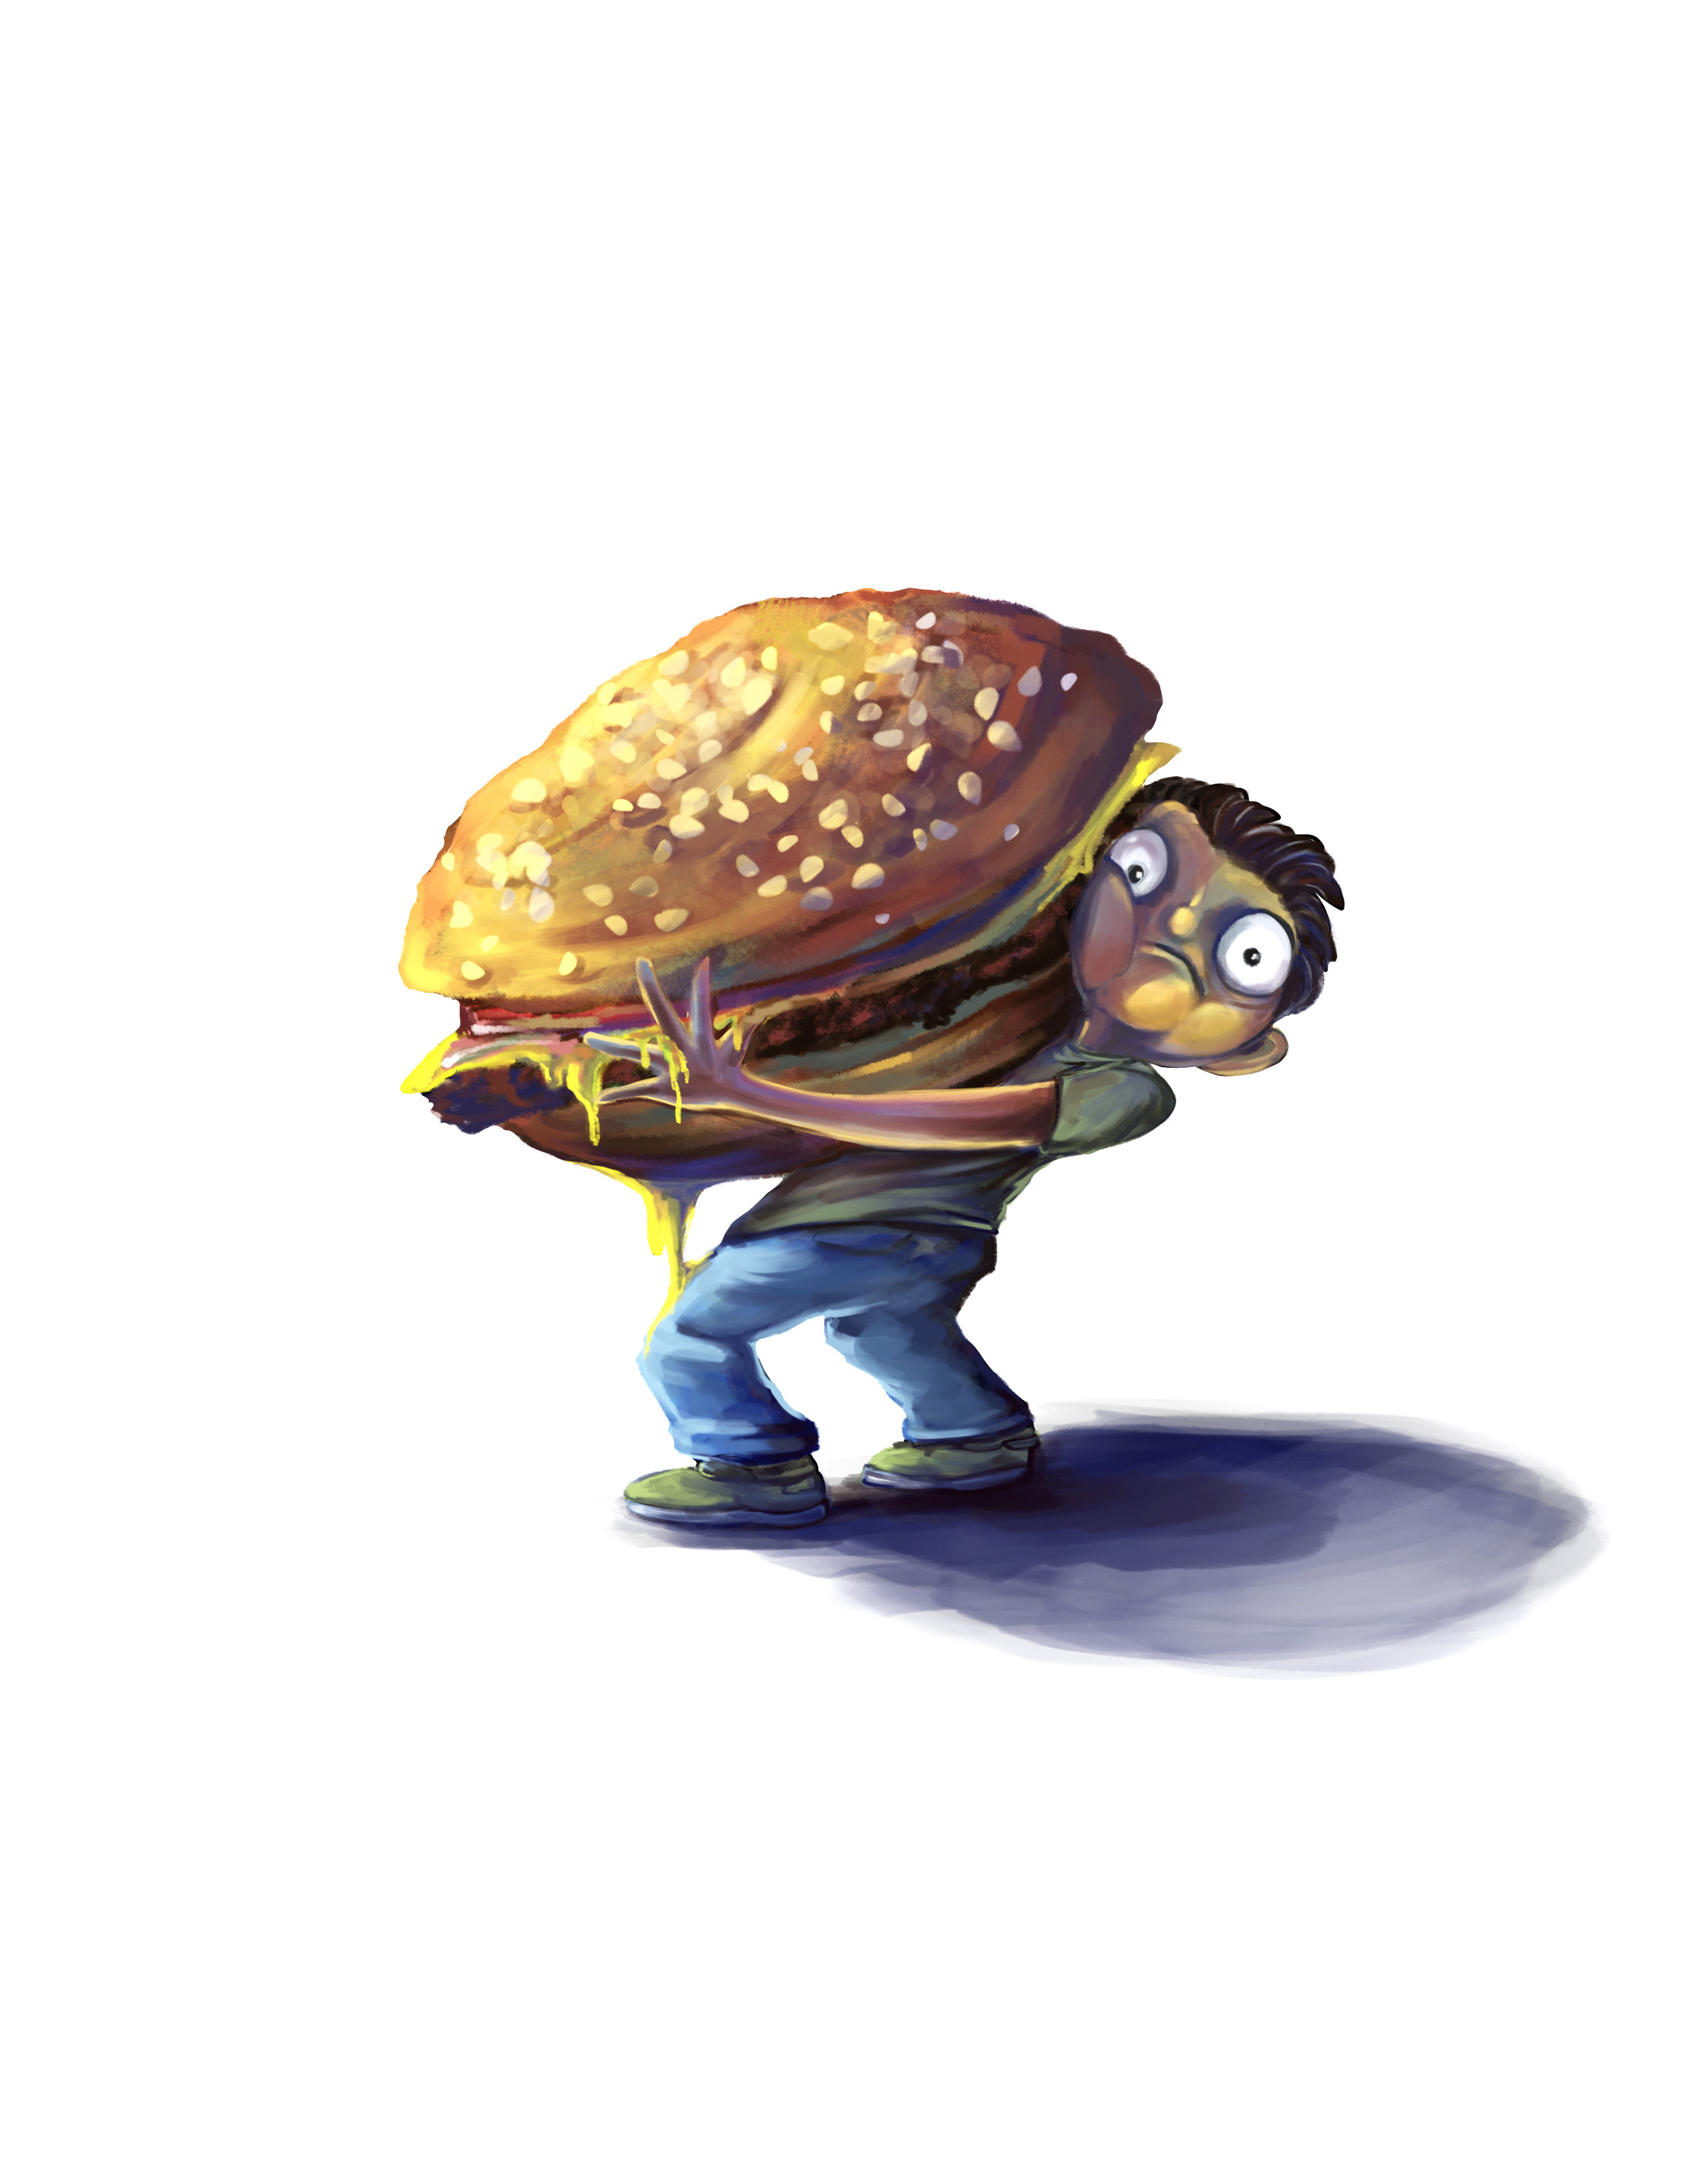 page18_GiantBurger.jpg